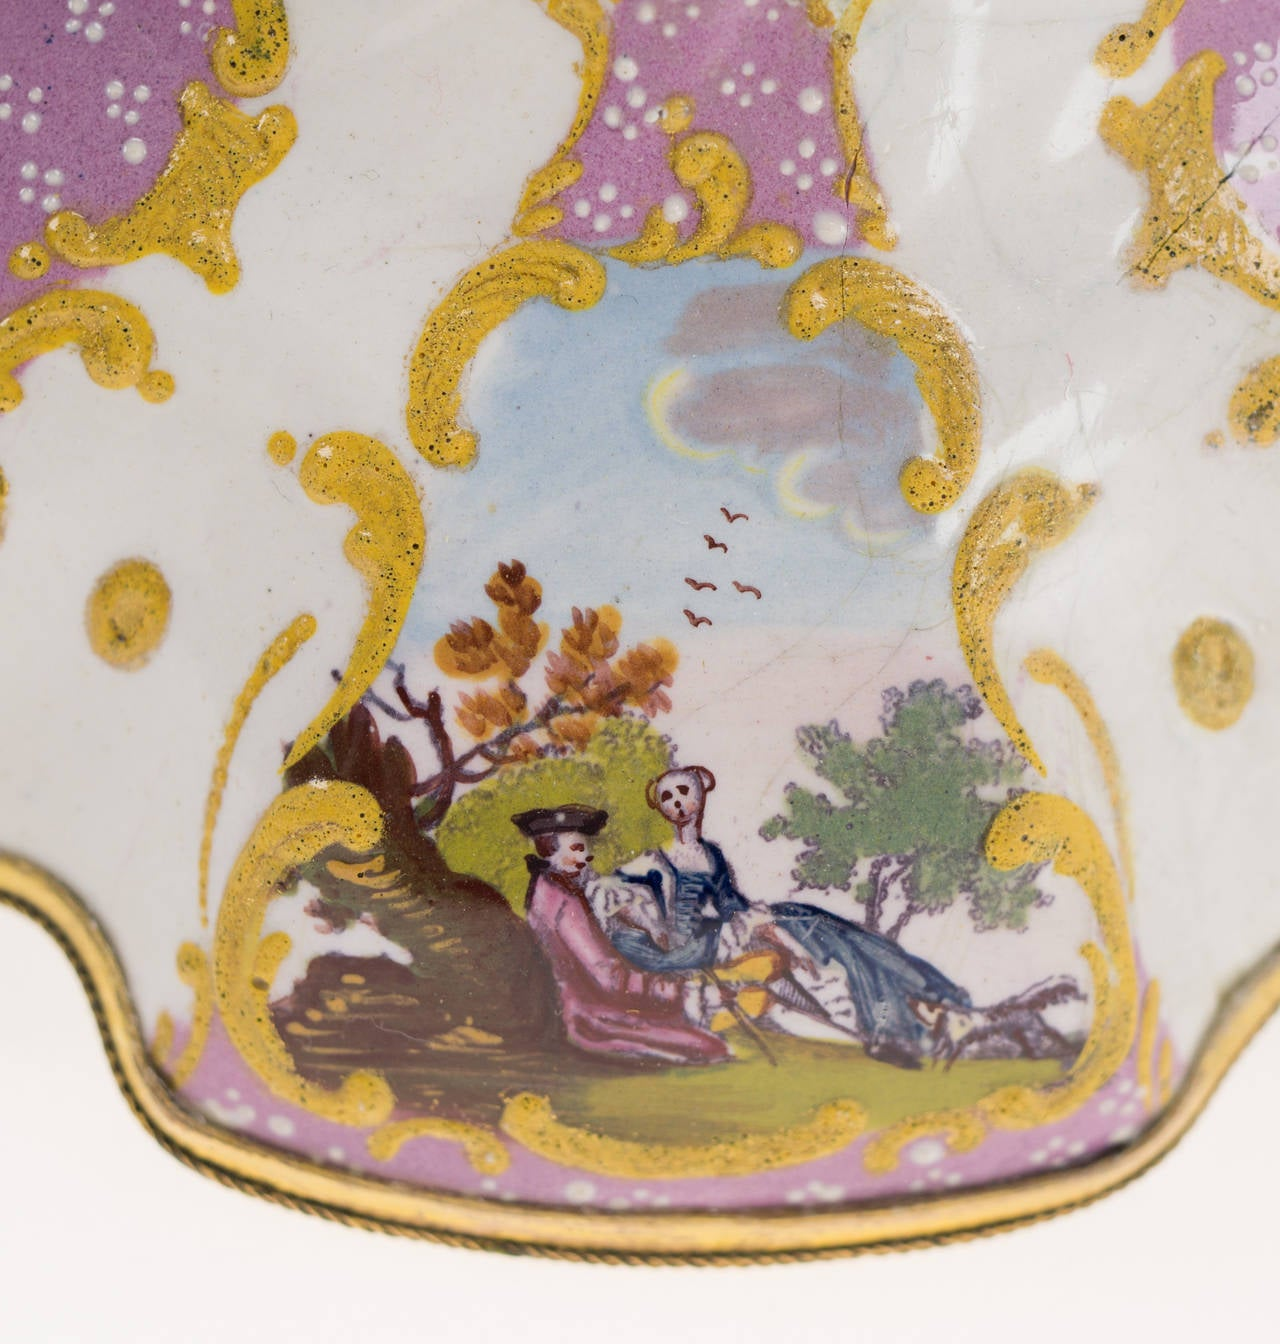 Late 18th Century Pair of English Enamel Candlesticks with Rococo Scenes on Pink Ground, 1780 For Sale